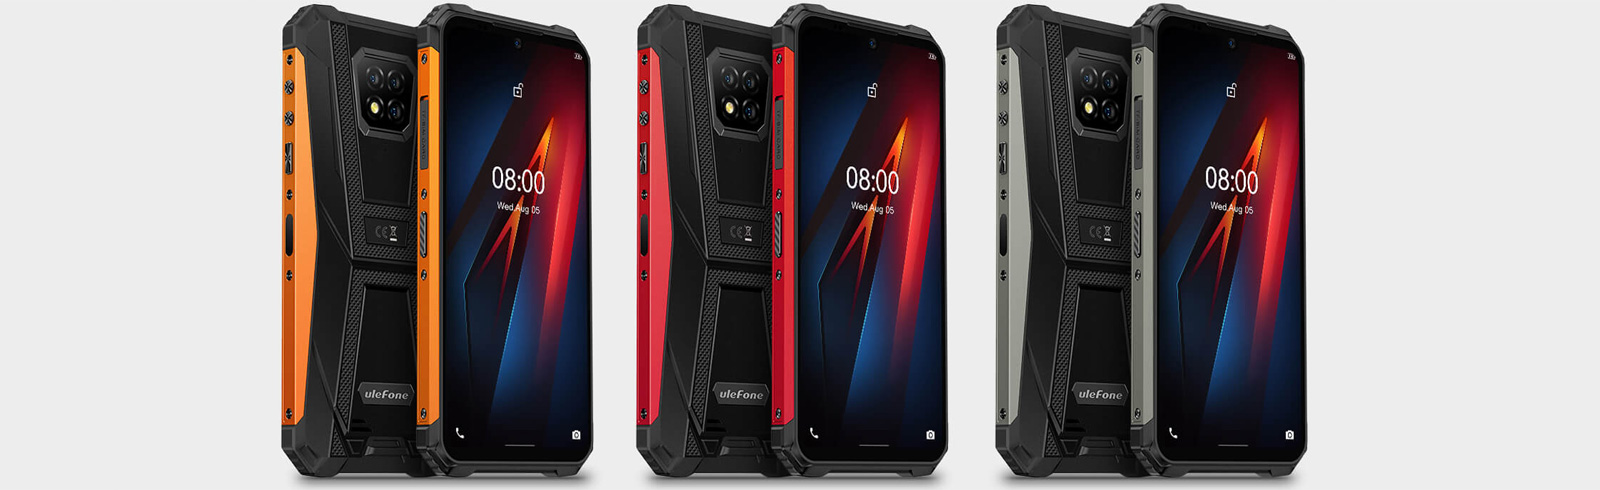 Ulefone unveils the Armor 8 with a 6.1-inch HD+ display, Helip P60 chipset